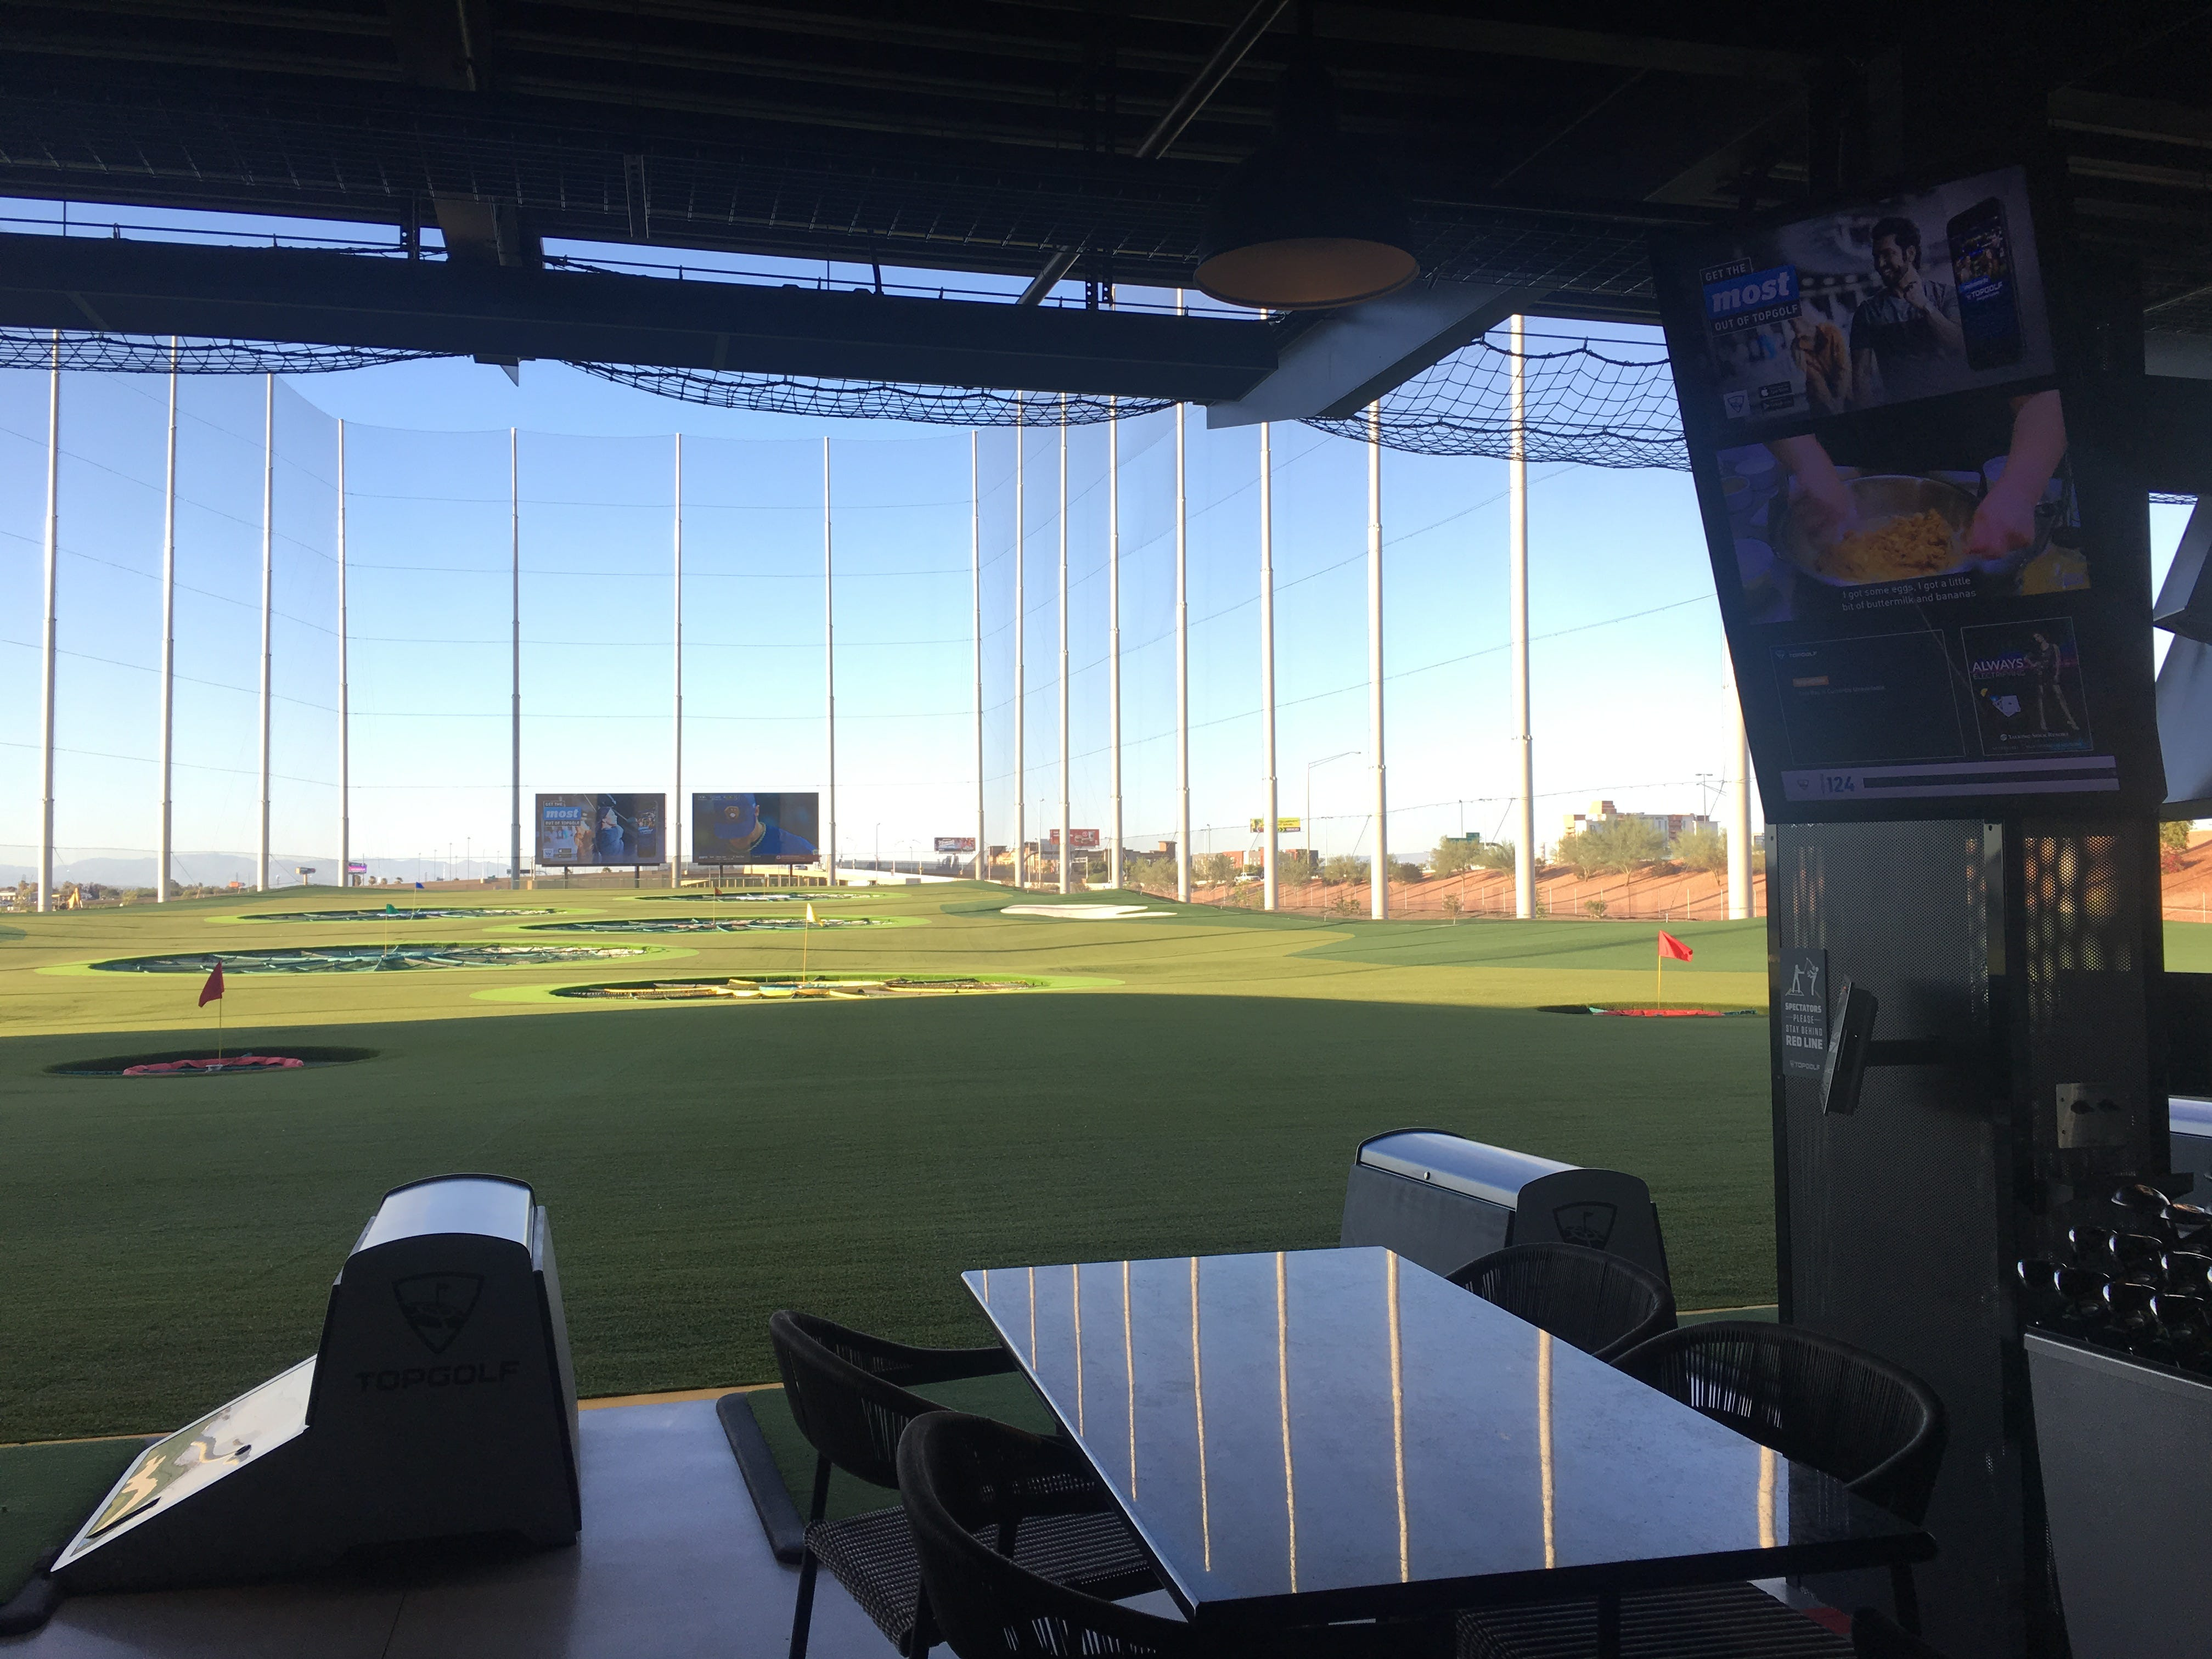 Topgolf Glendale offers more than 100 hitting bays that can each accommodate up to eight people, and groups of six players can compete for points on the venue's driving range.